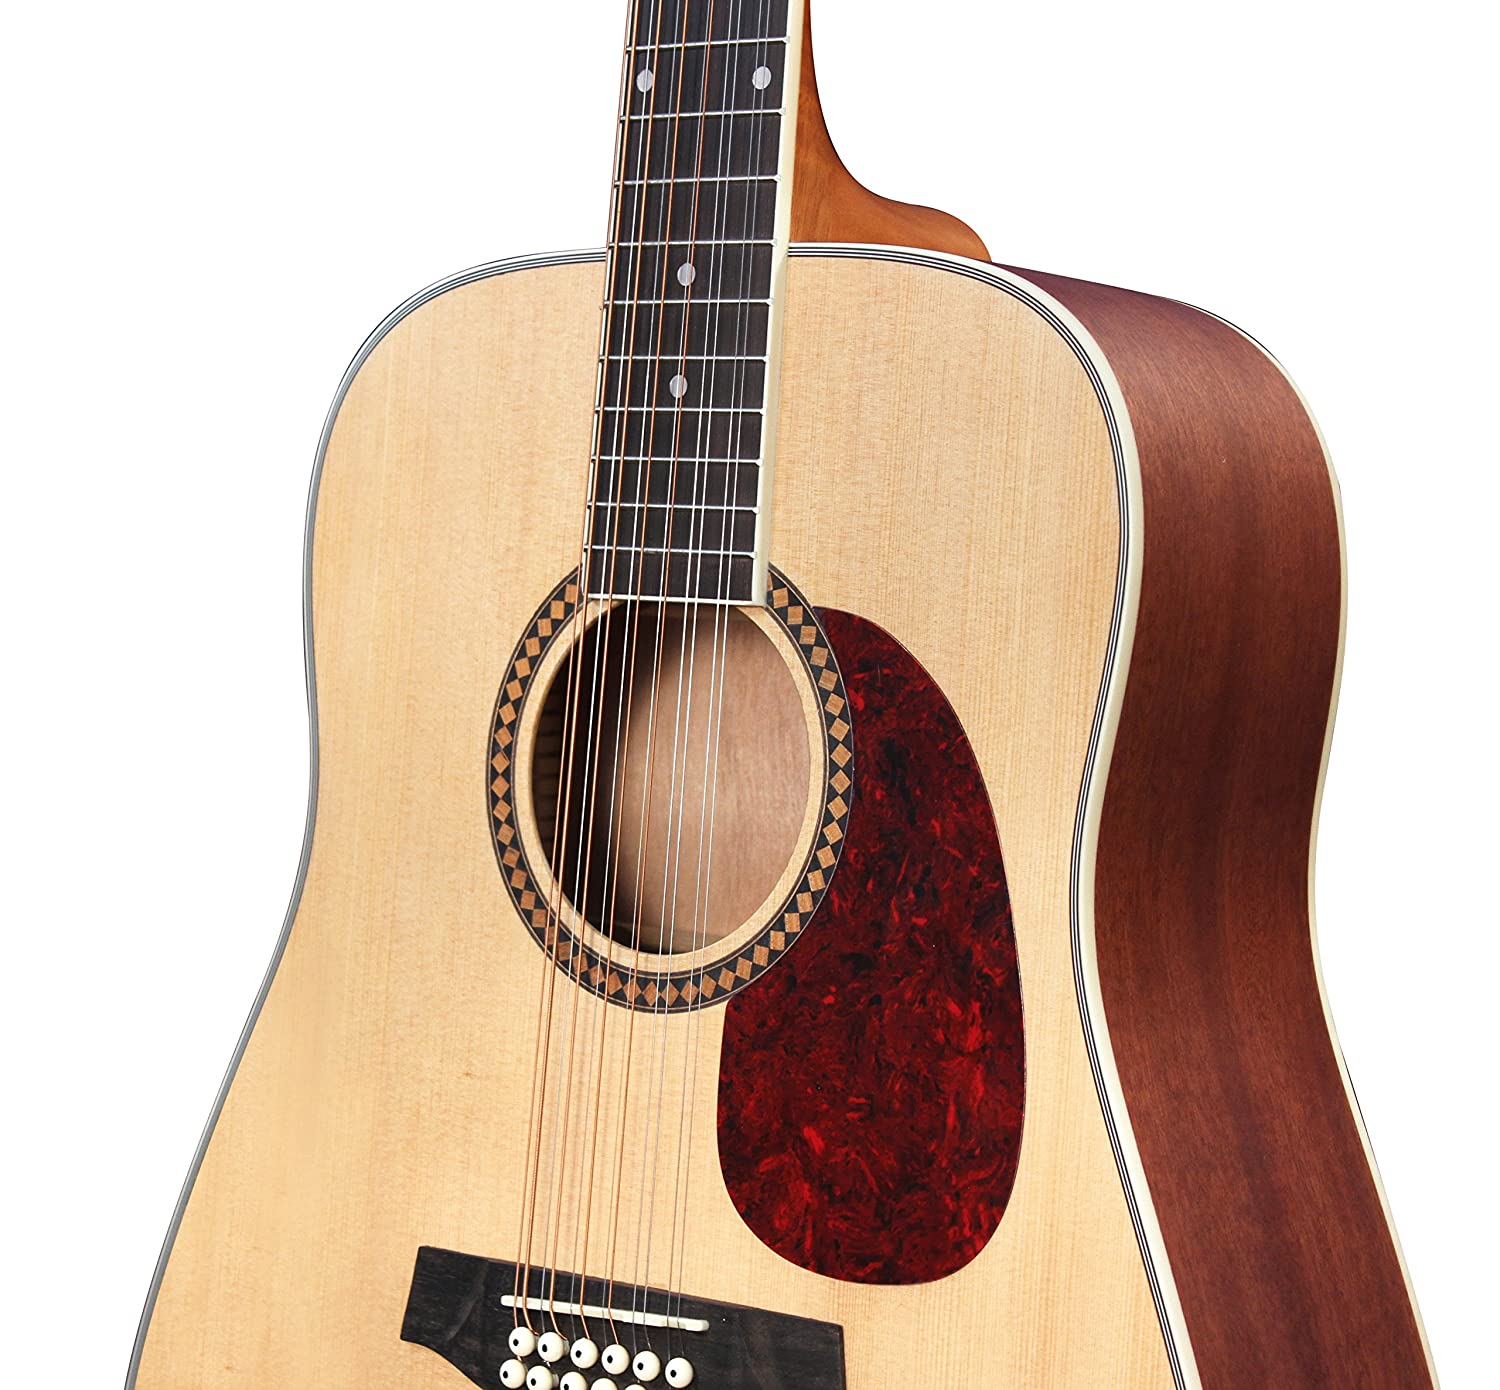 ashton d25 12 12 string dreadnought acoustic guitar natural